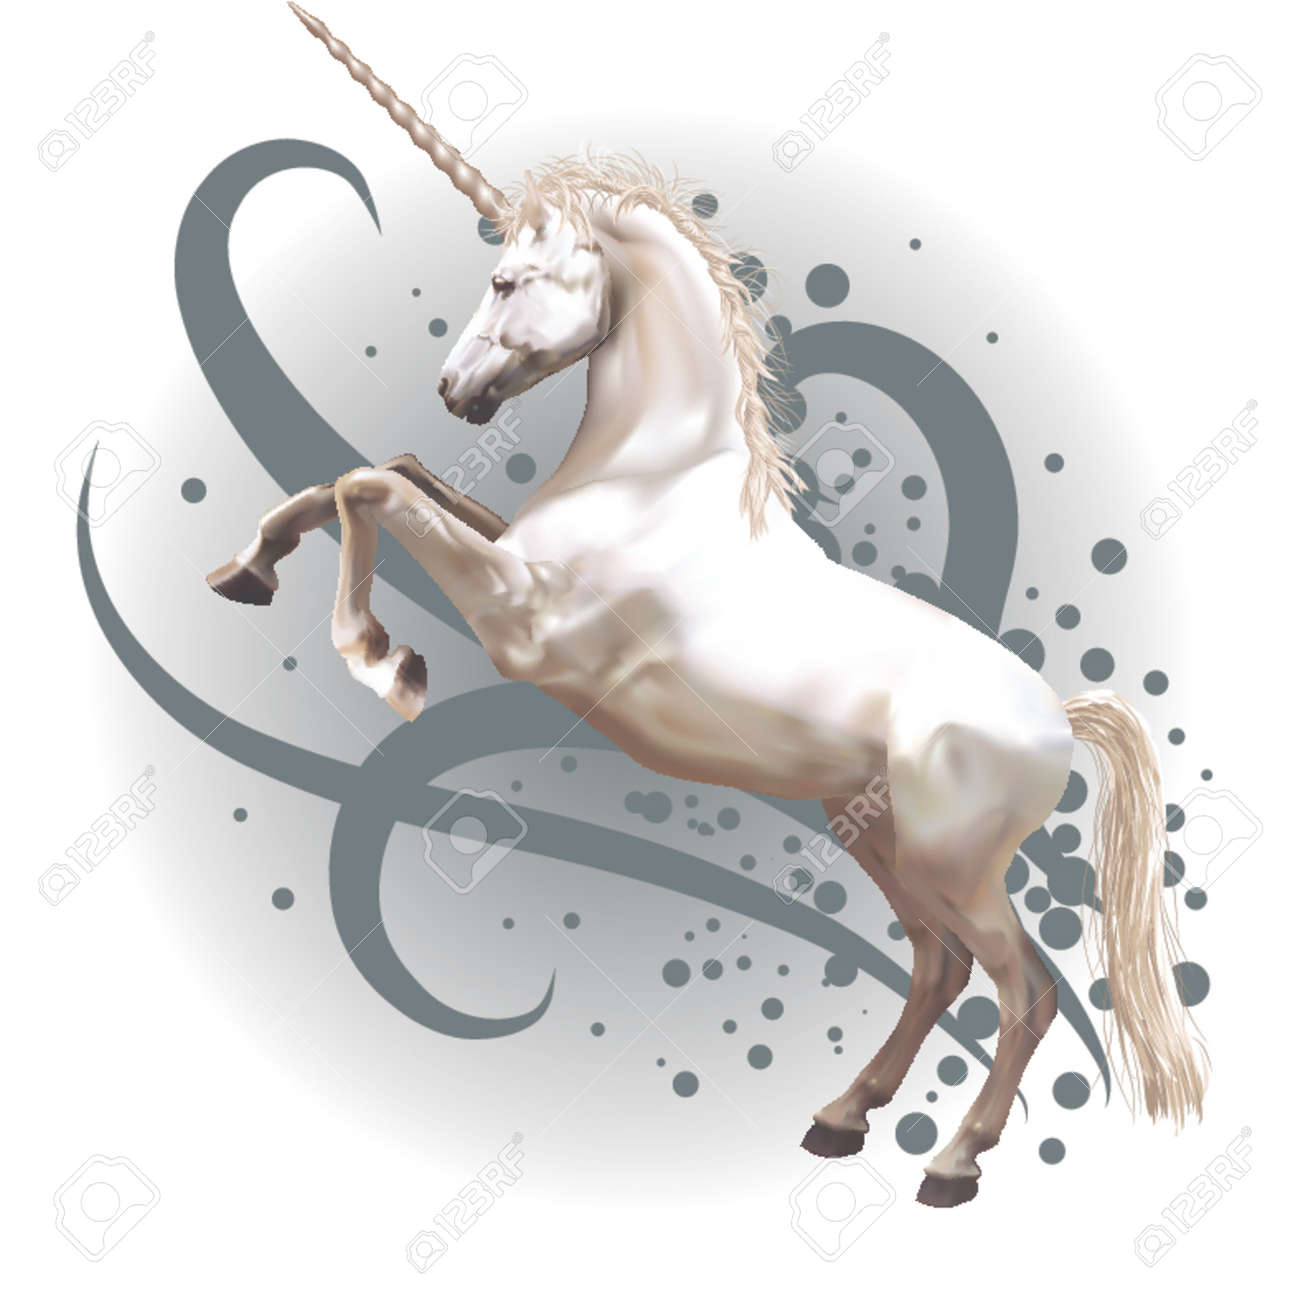 unicorn a vector illustration of a unicorn rearing up on its